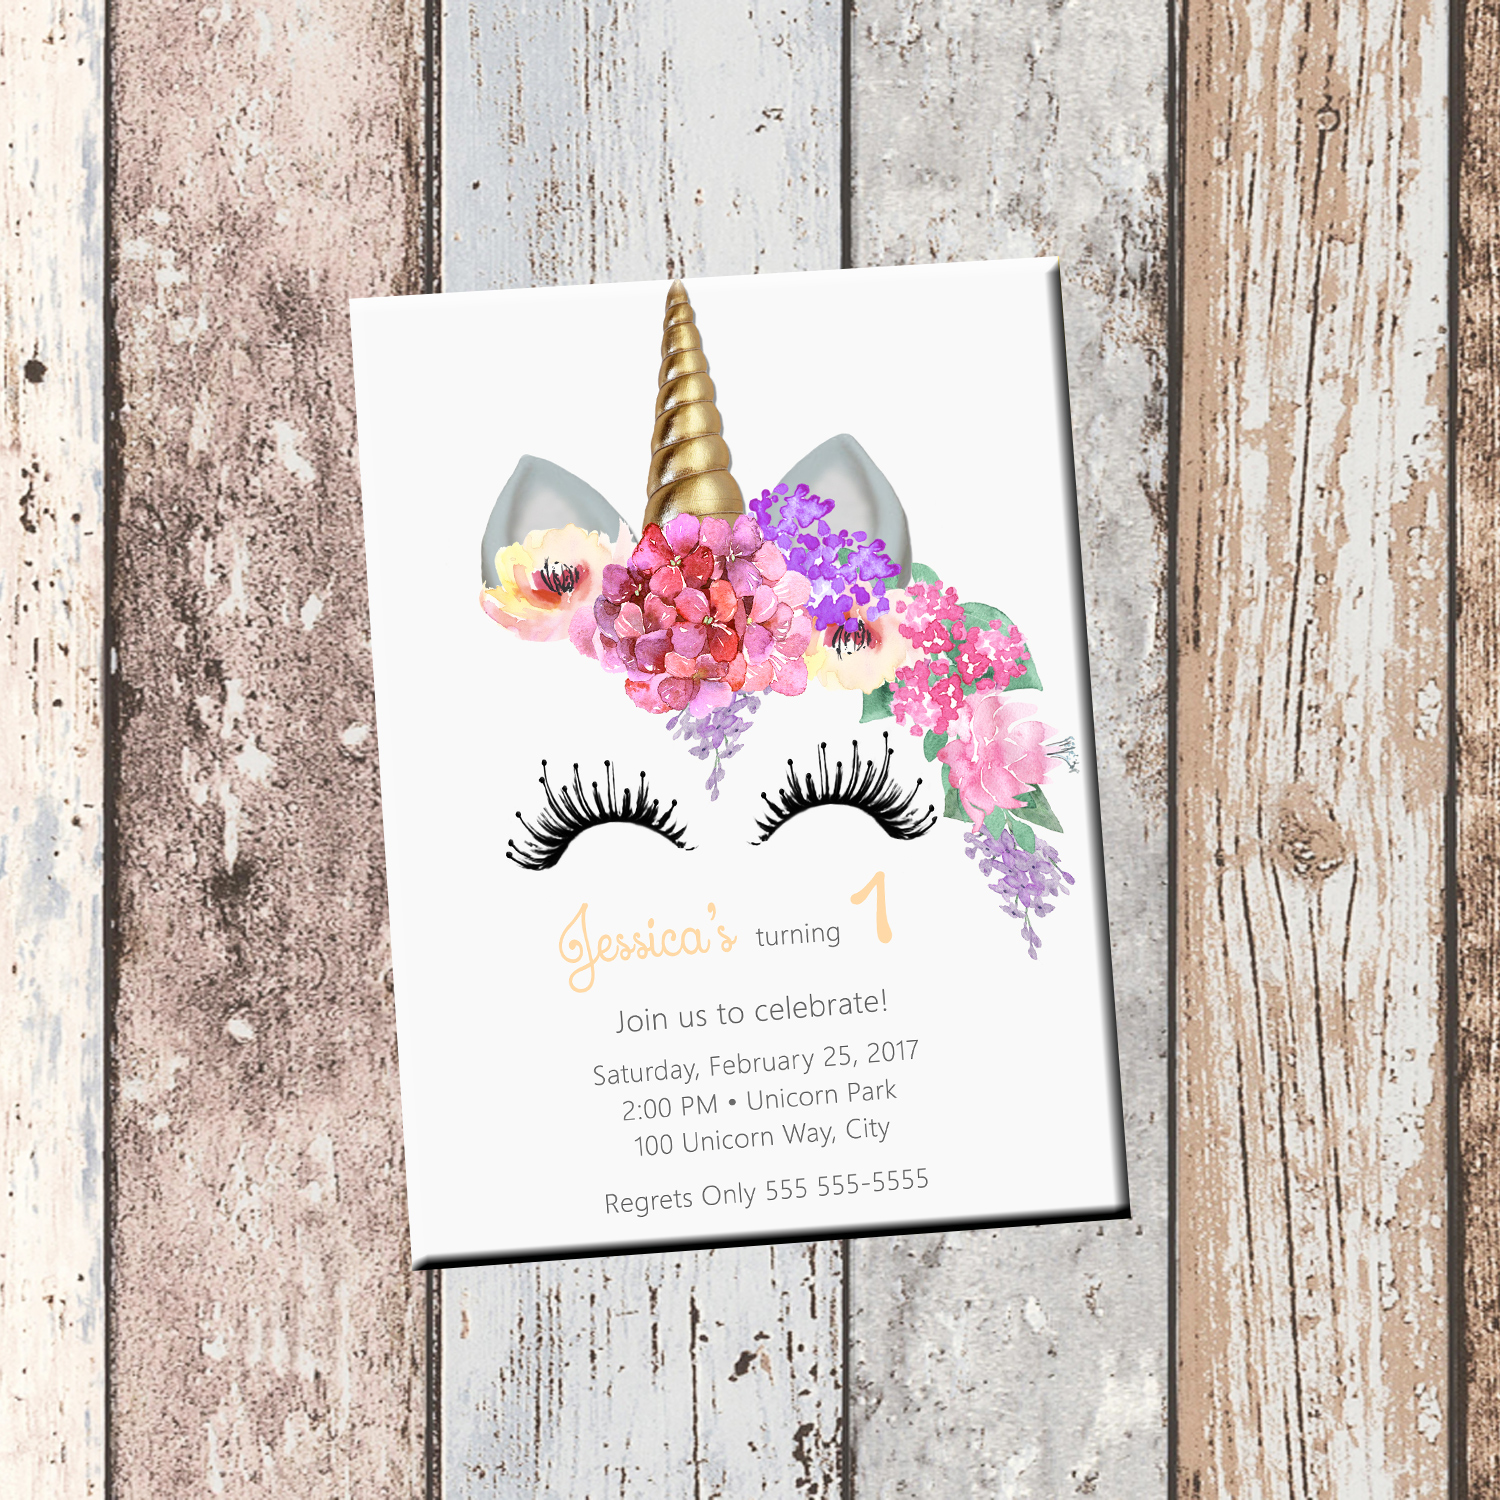 Unicorn Birthday Personalized Invitation 1 Sided, Birthday